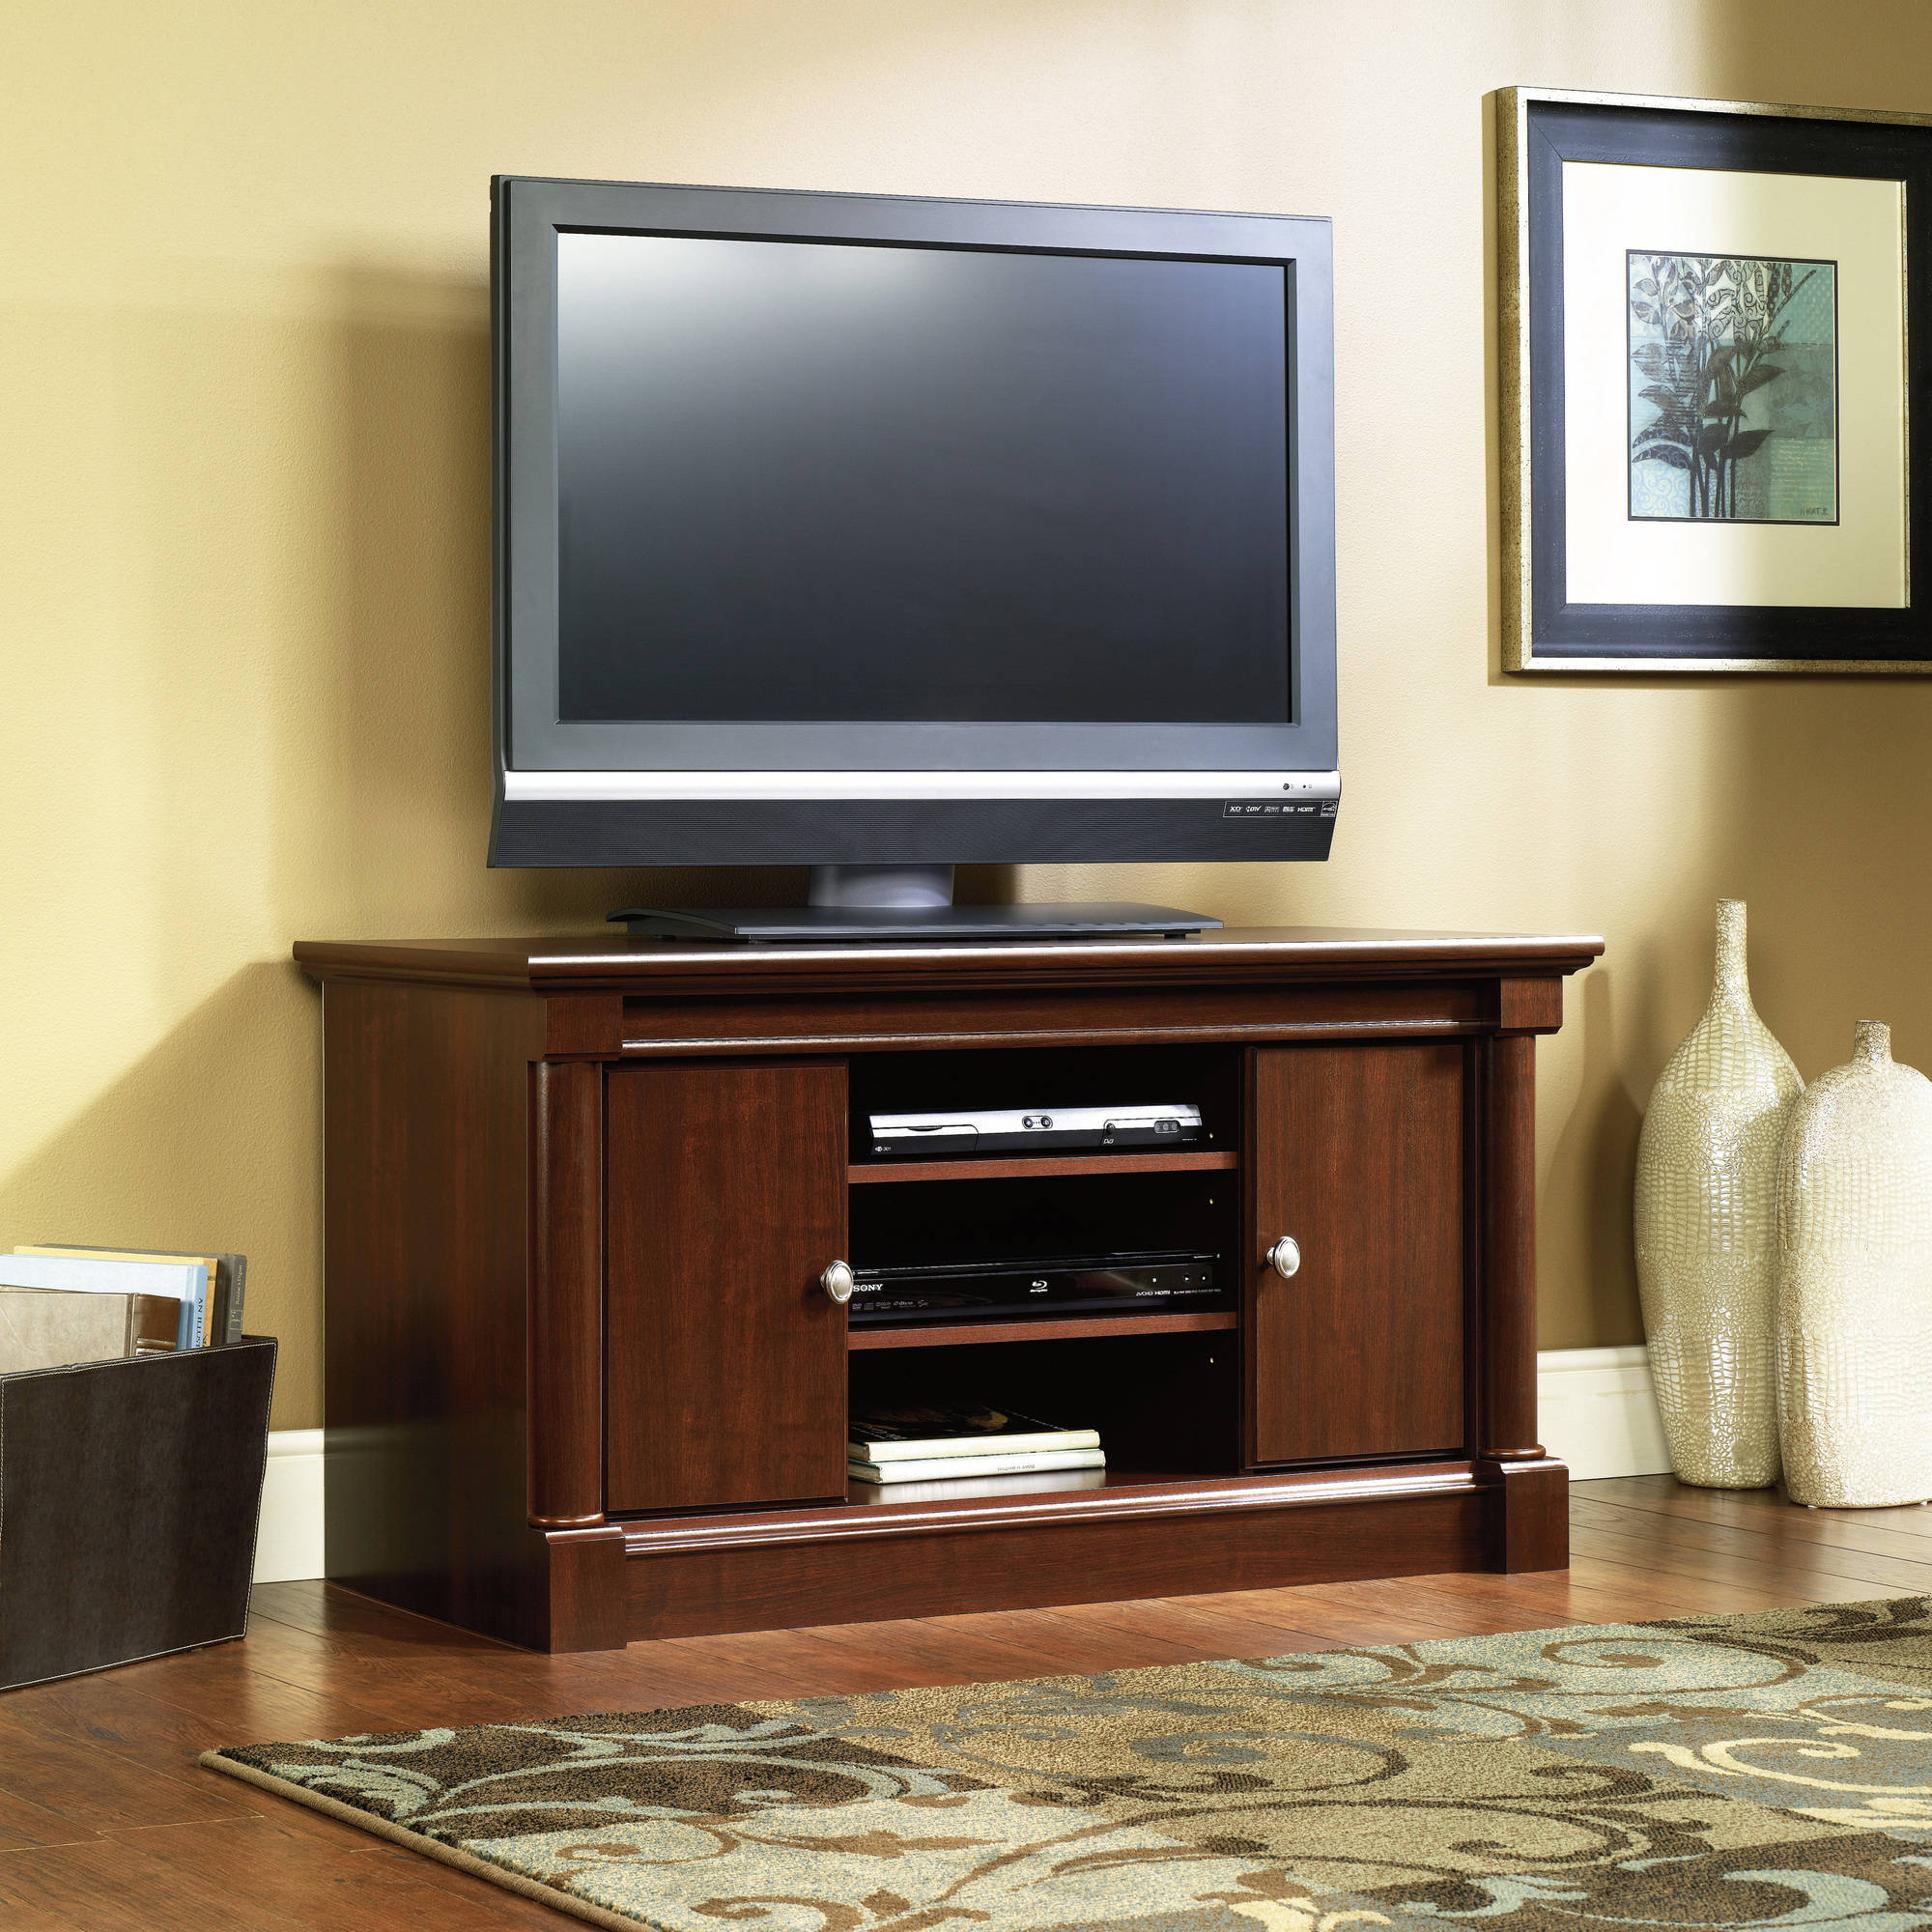 Cherry Tv Stand Entertainment Center With Storage Media Furniture Console 42 47